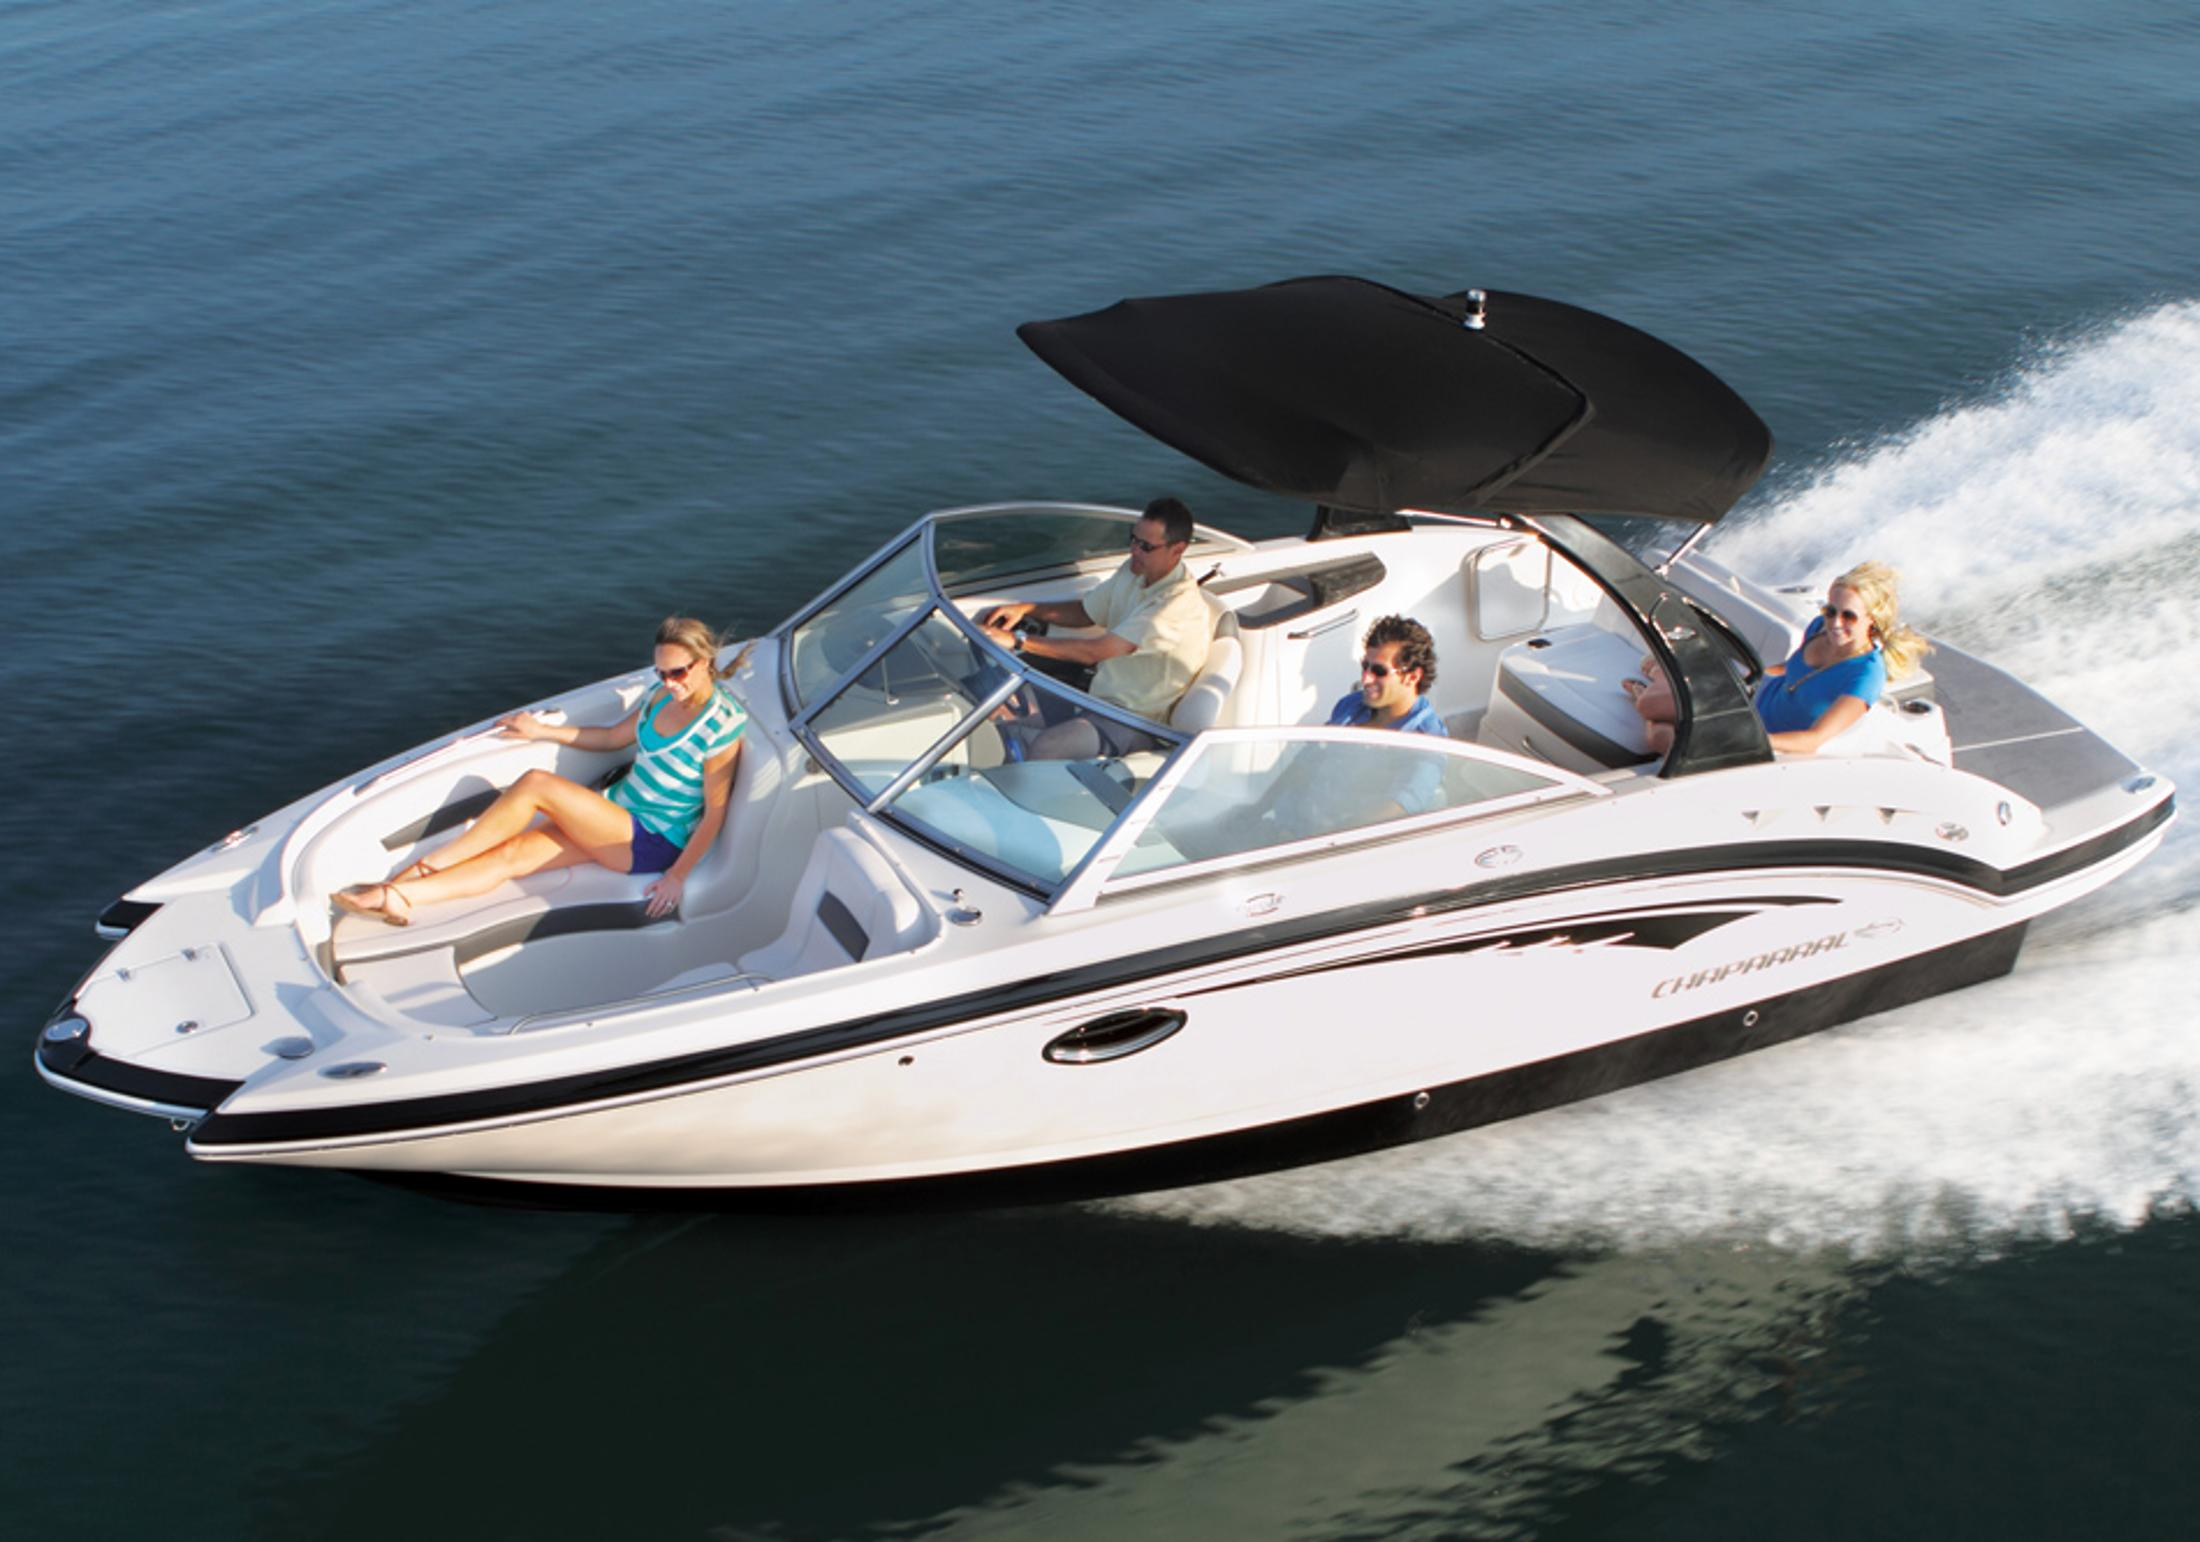 2017 Chaparral 244 Sunesta Power Boat For Sale - www.yachtworld.com